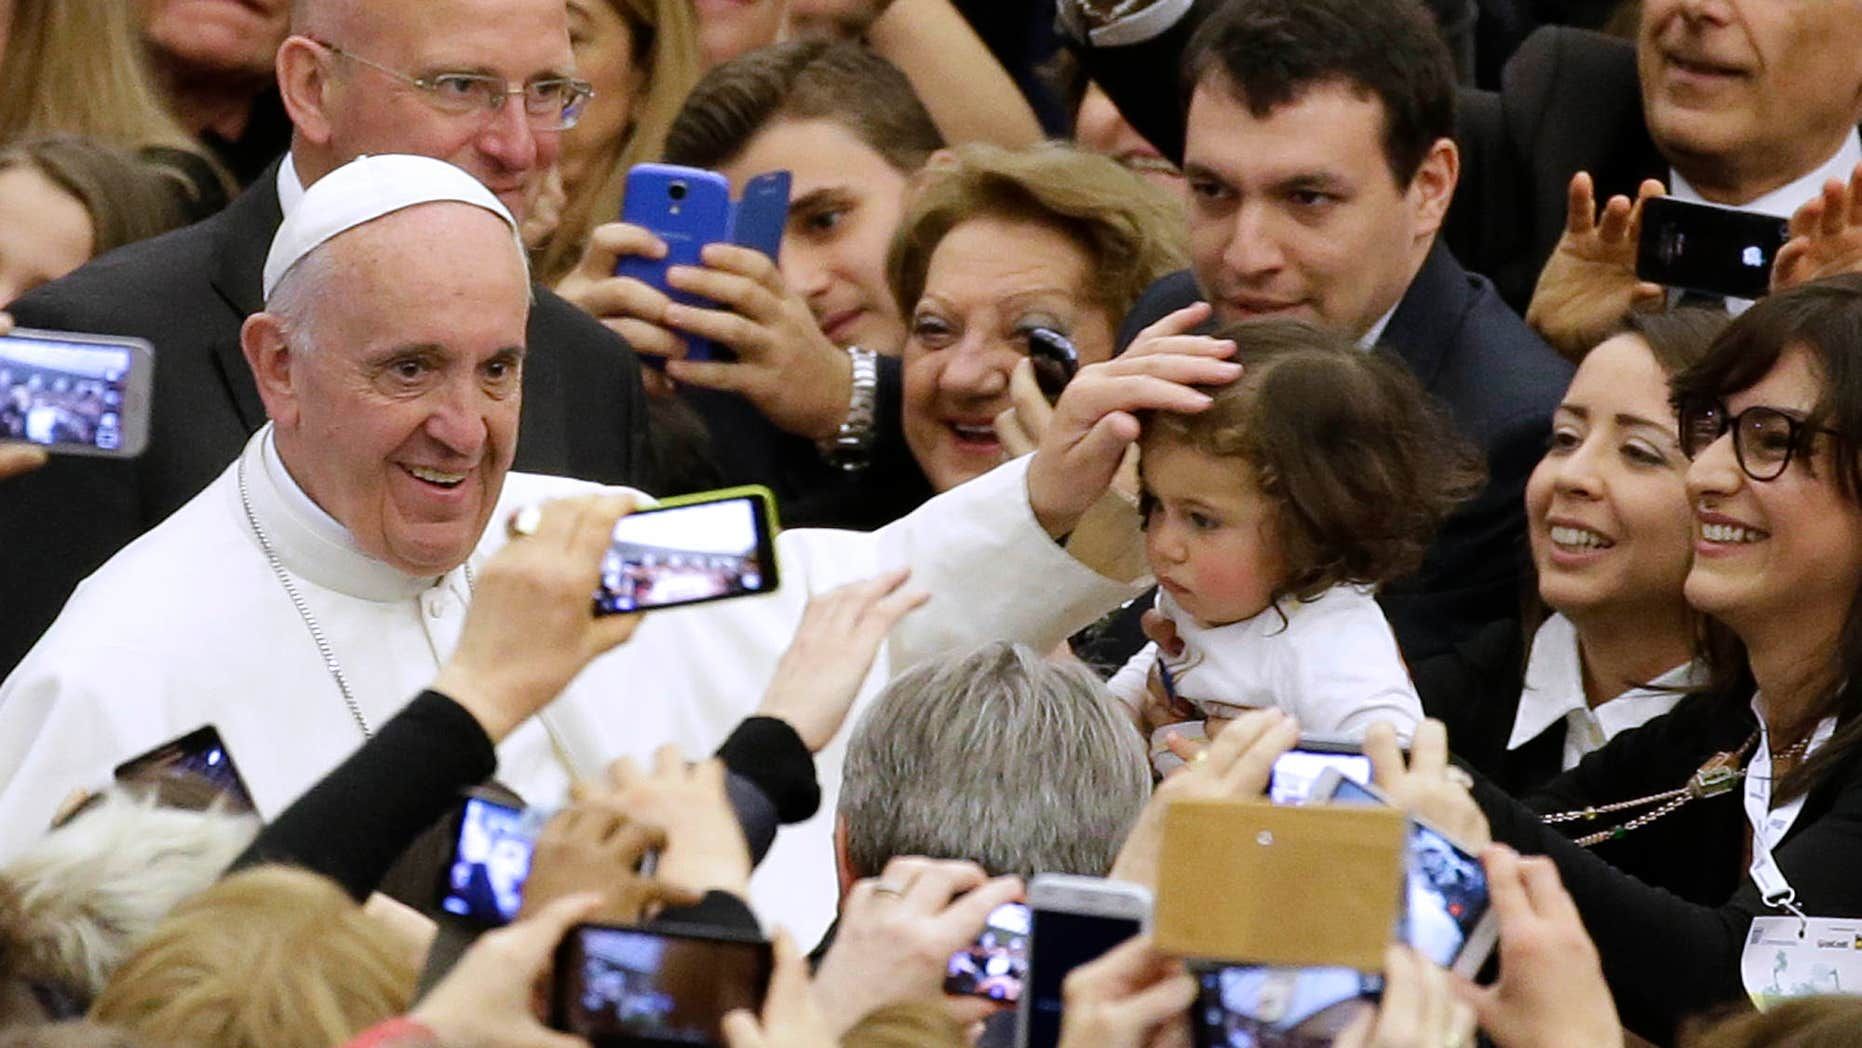 Feb. 27, 2016: Pope Francis meets with members of the Italian Entrepreneurs Association in the Paul VI hall at the Vatican.